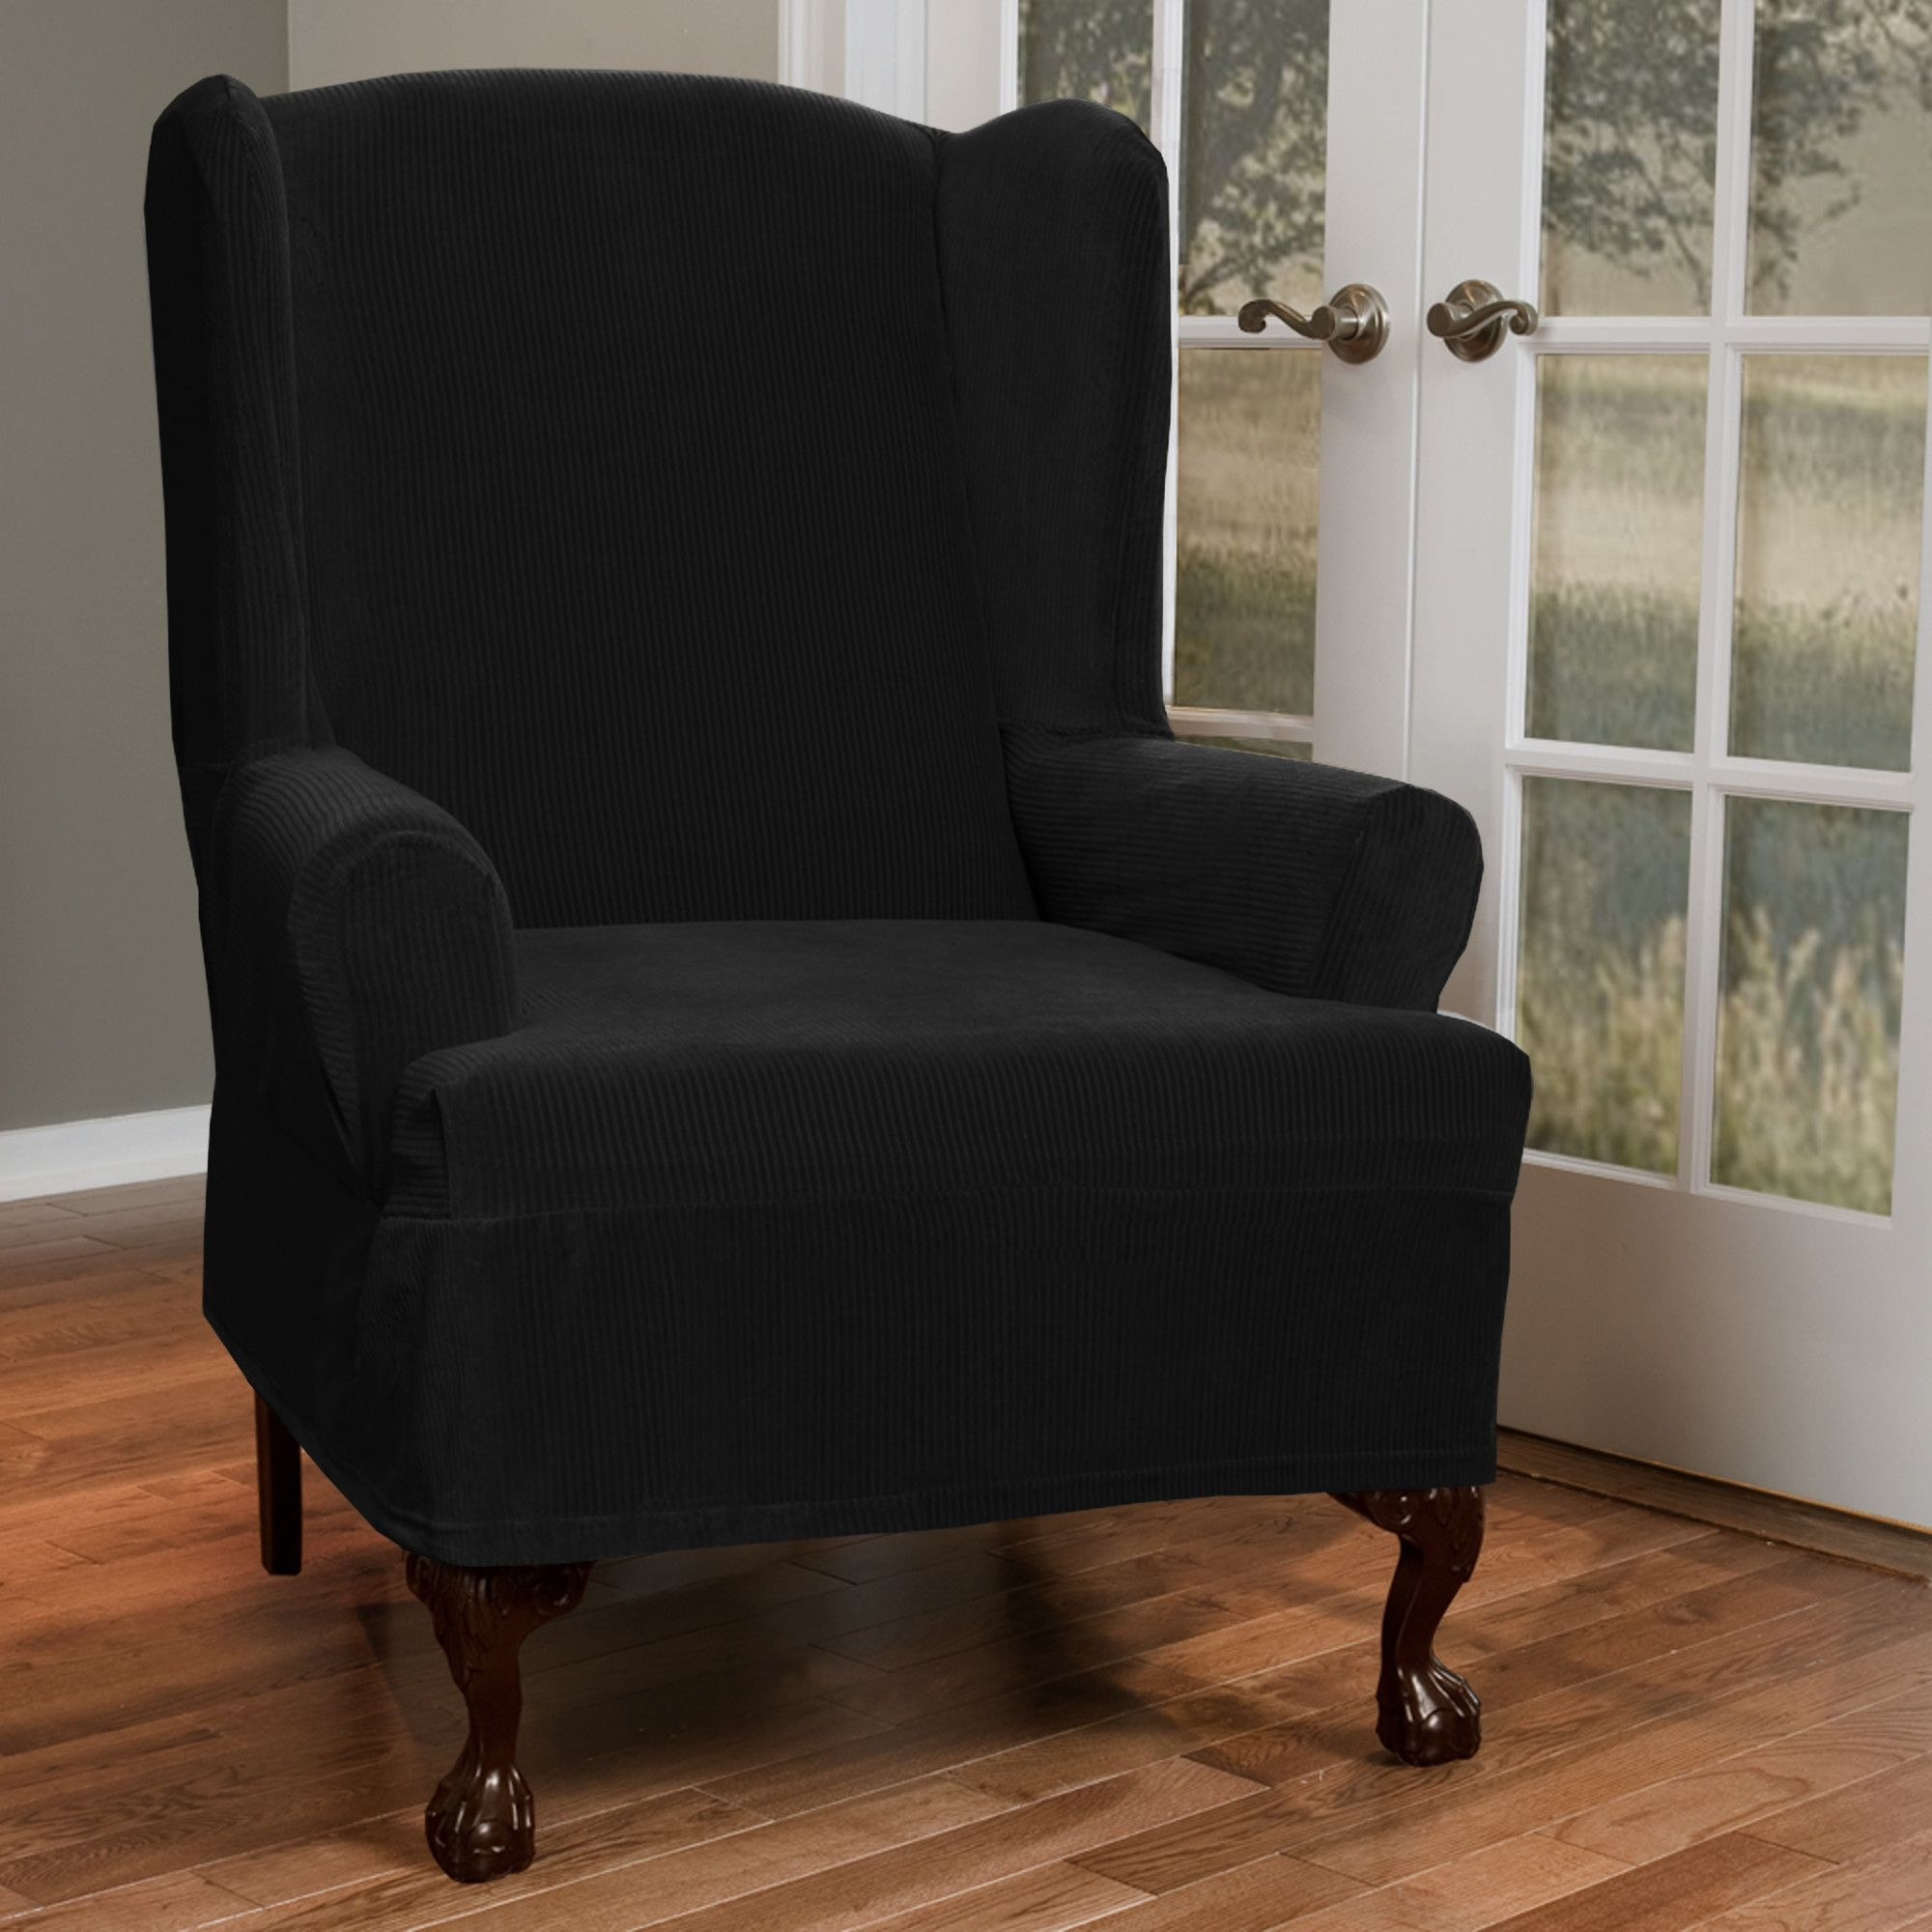 Merveilleux Maytex Collin Stretch 1 Piece Slipcover Wing Chair, Black